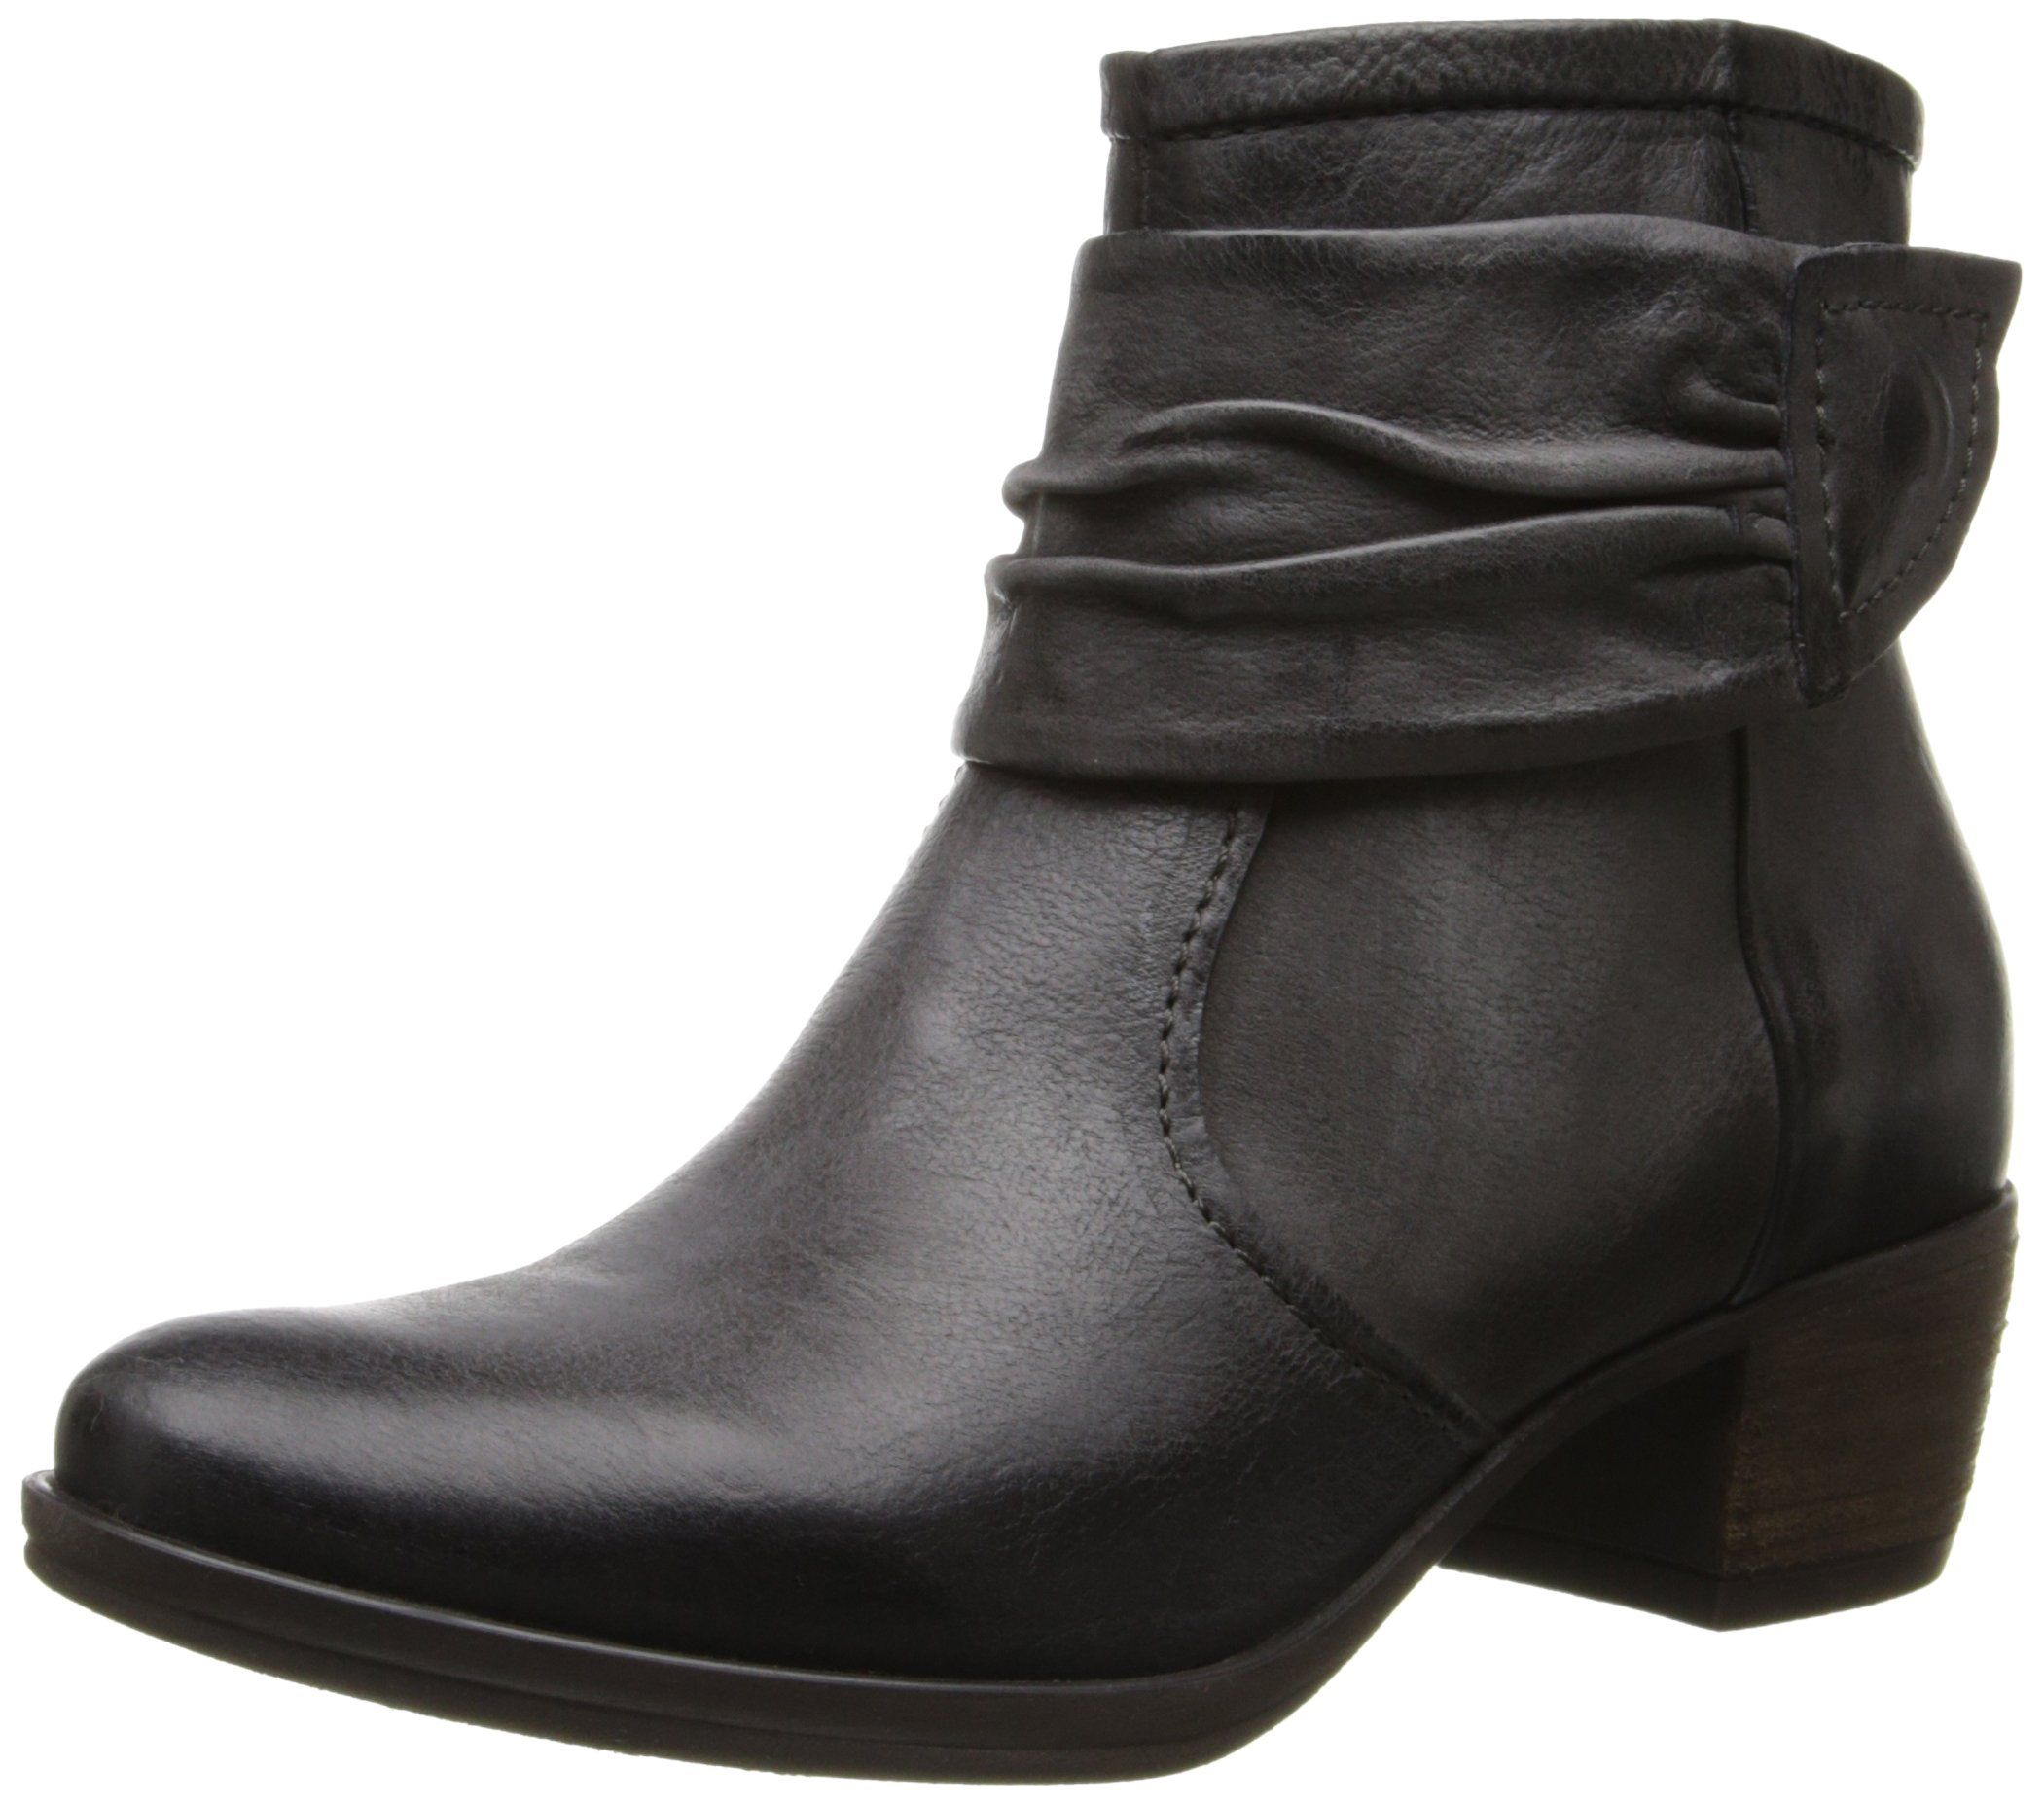 f27cae1ffc241 MJUS Women's Fenton Boot, Charcoal, 40 EU/9.5 M US. The style name ...